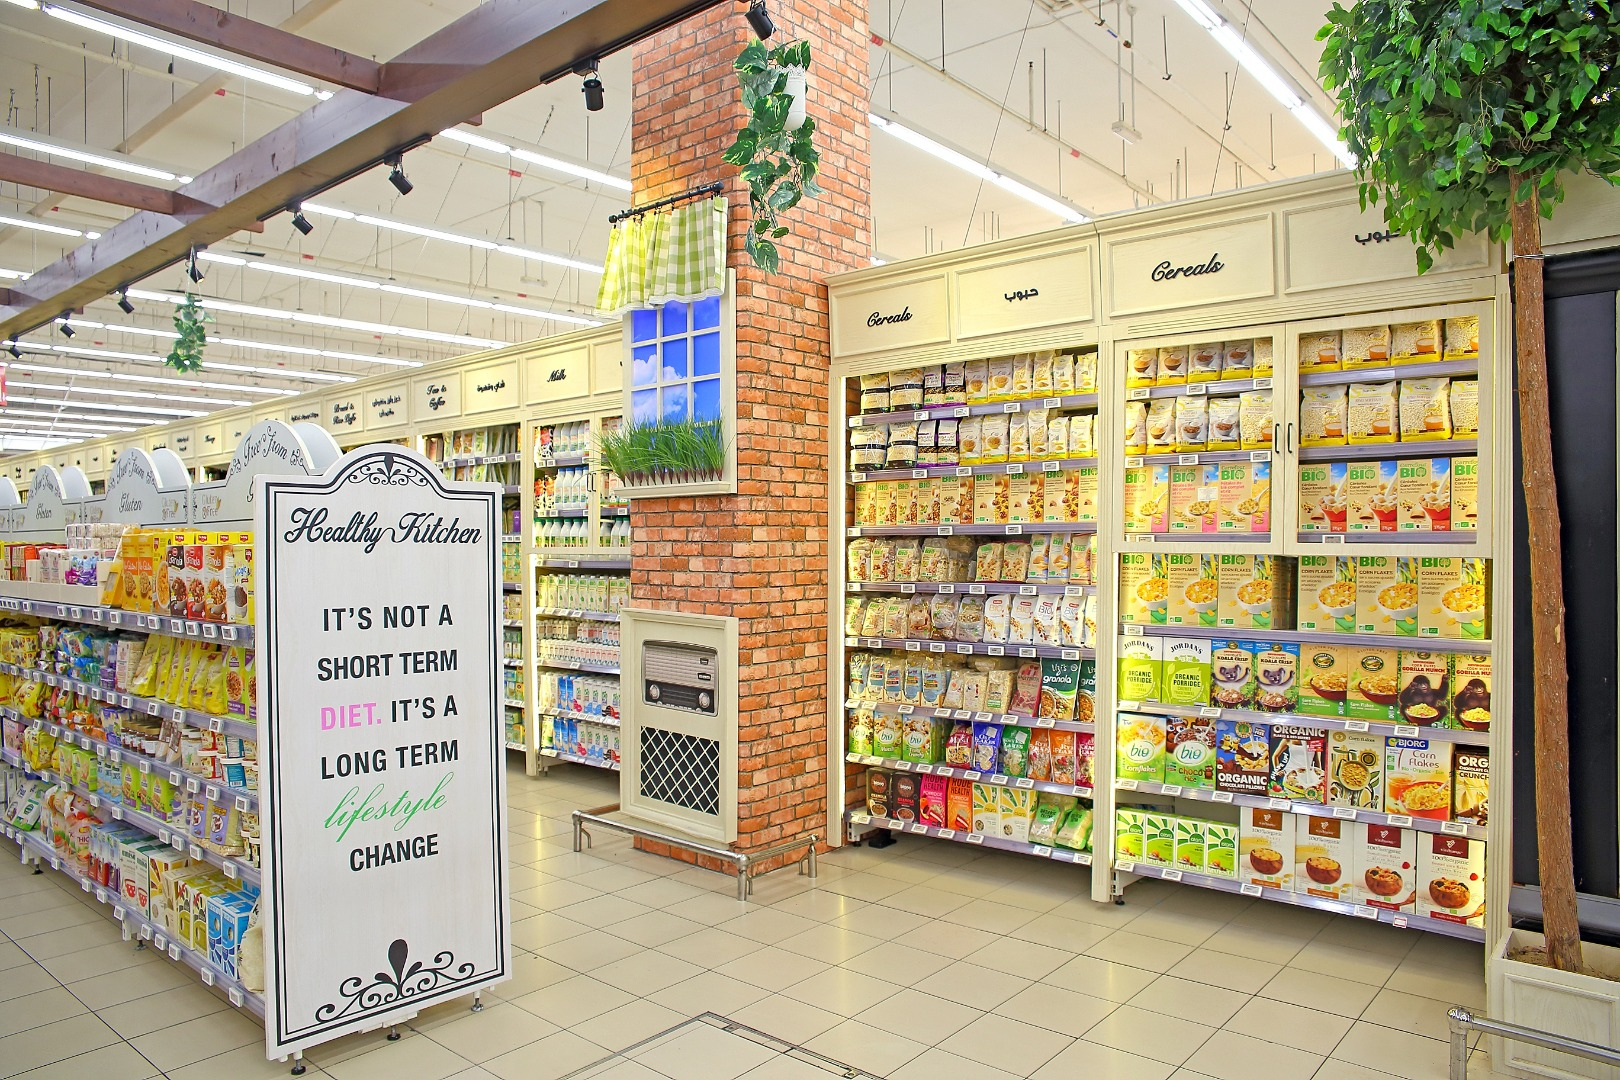 15268-carrefour-launches-healthy-kitchen-section-img-1